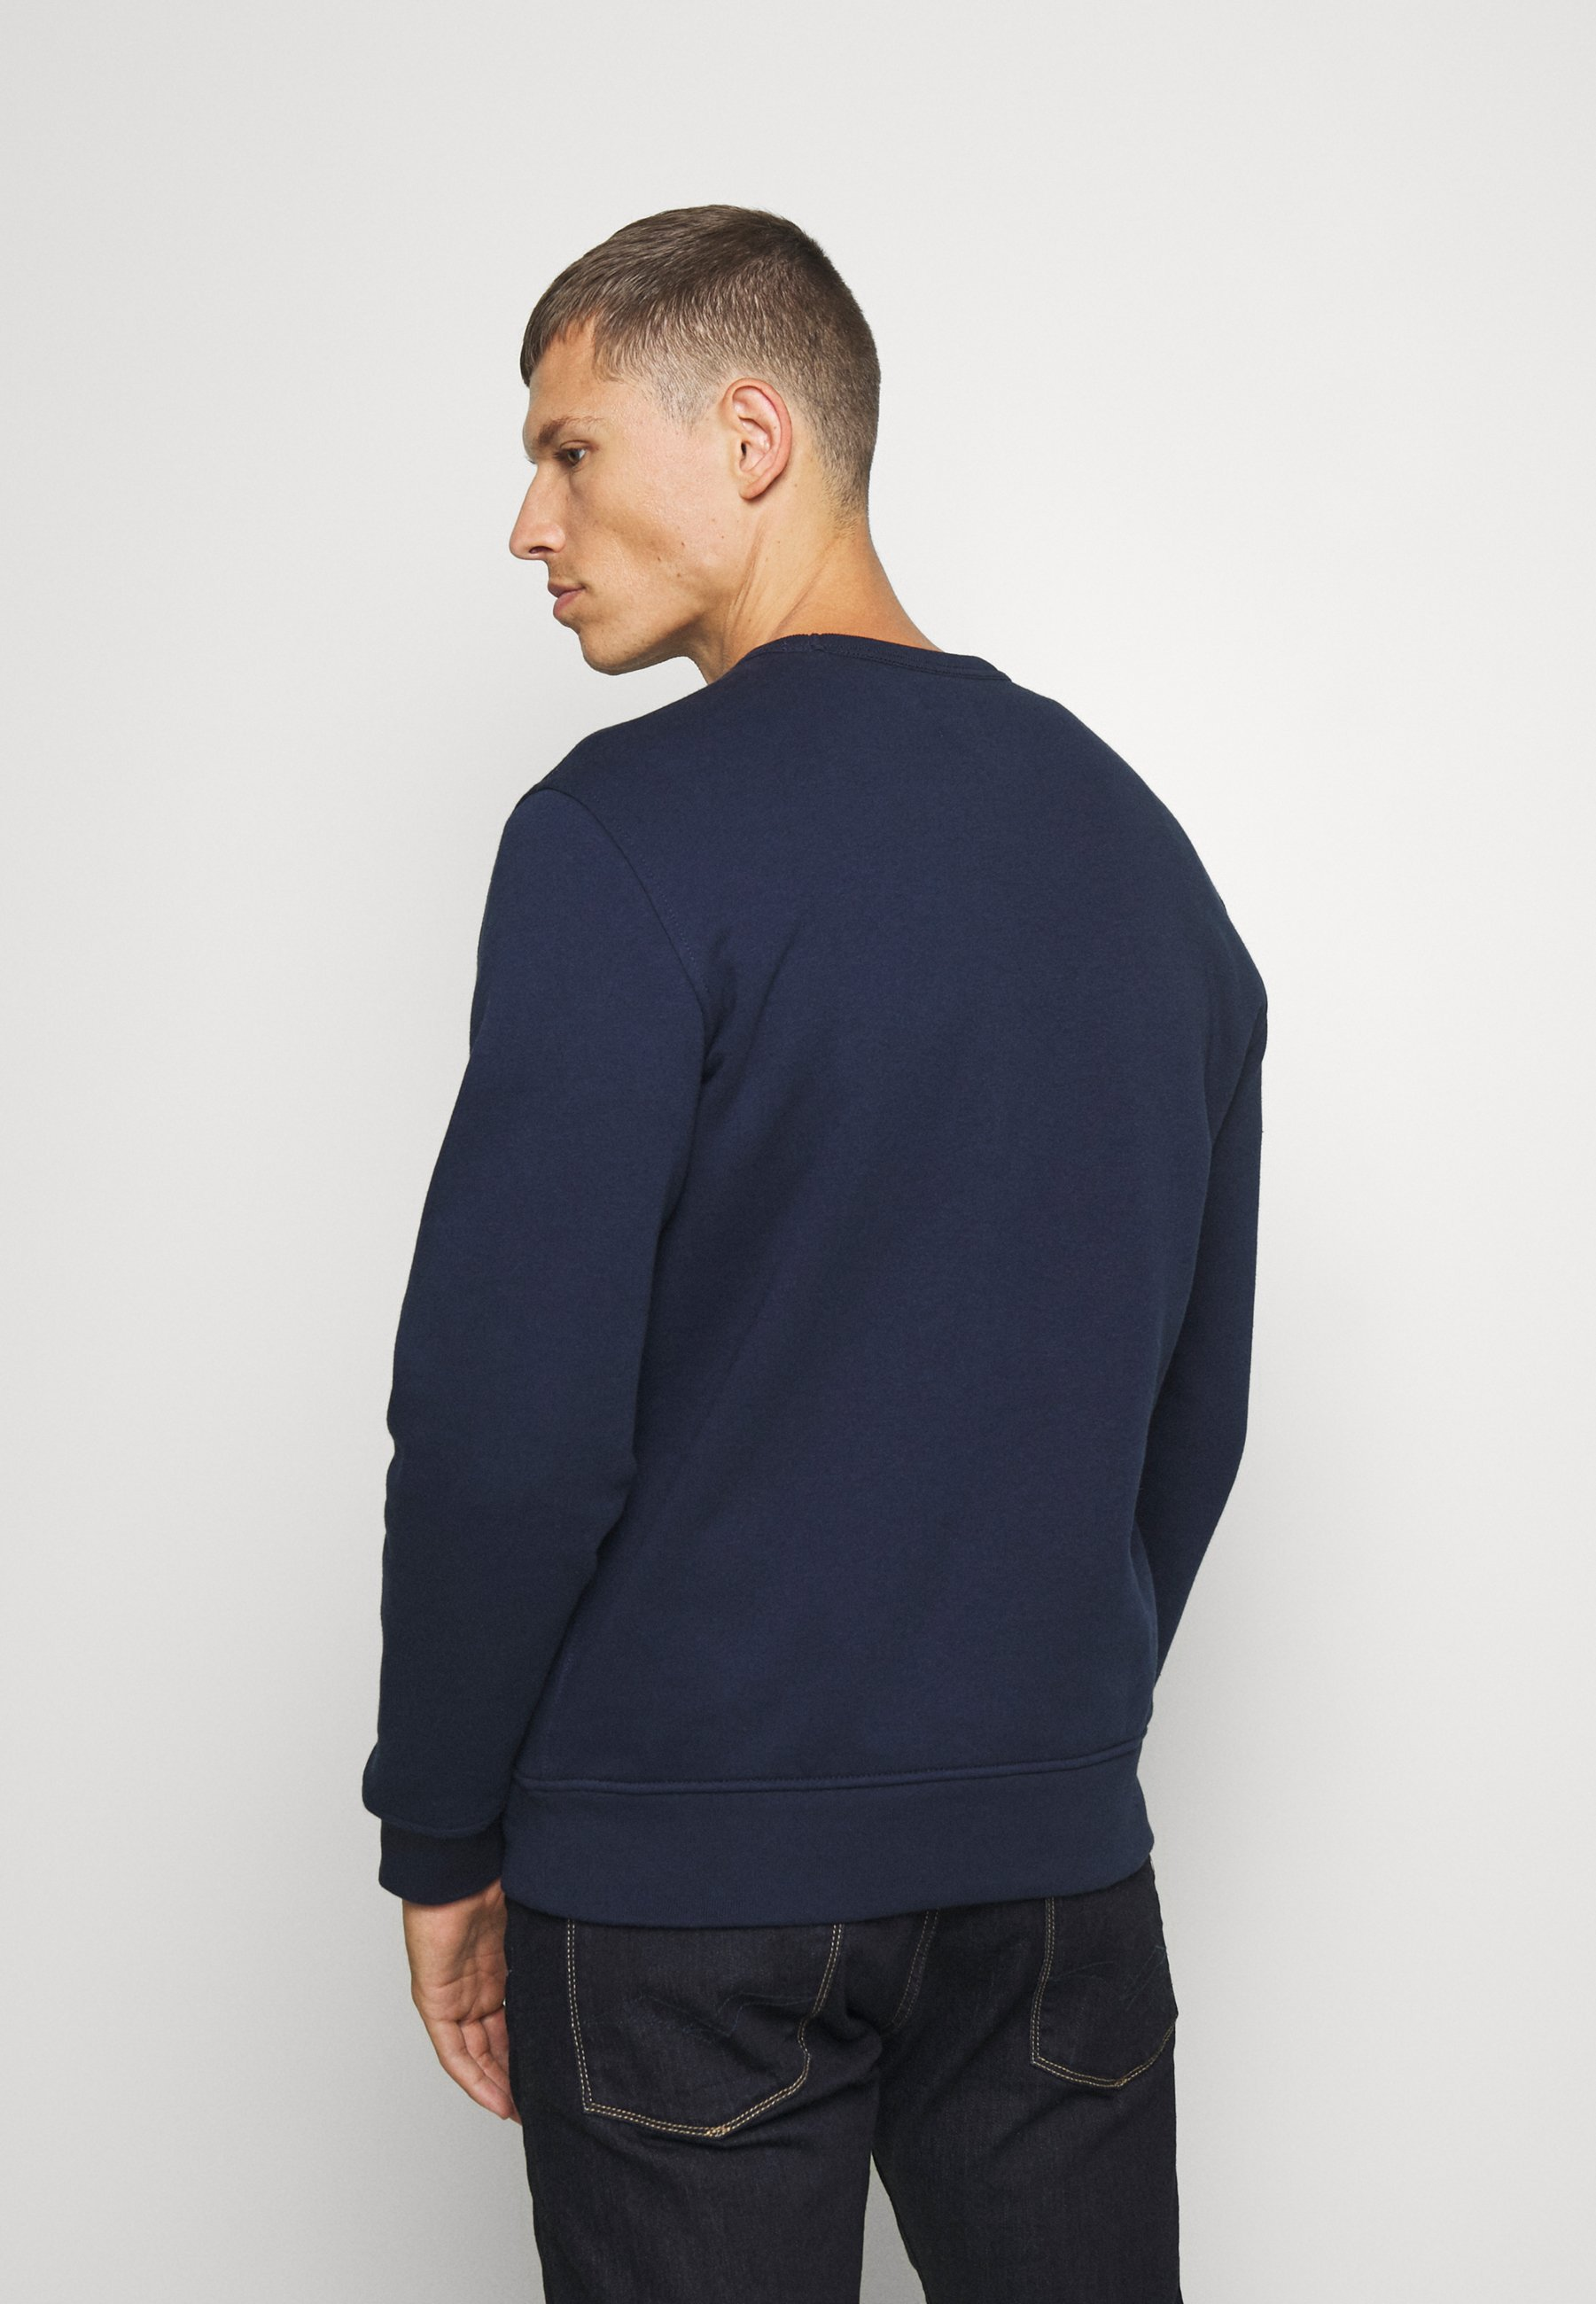 ARCH CREW Sweater tapestry navy